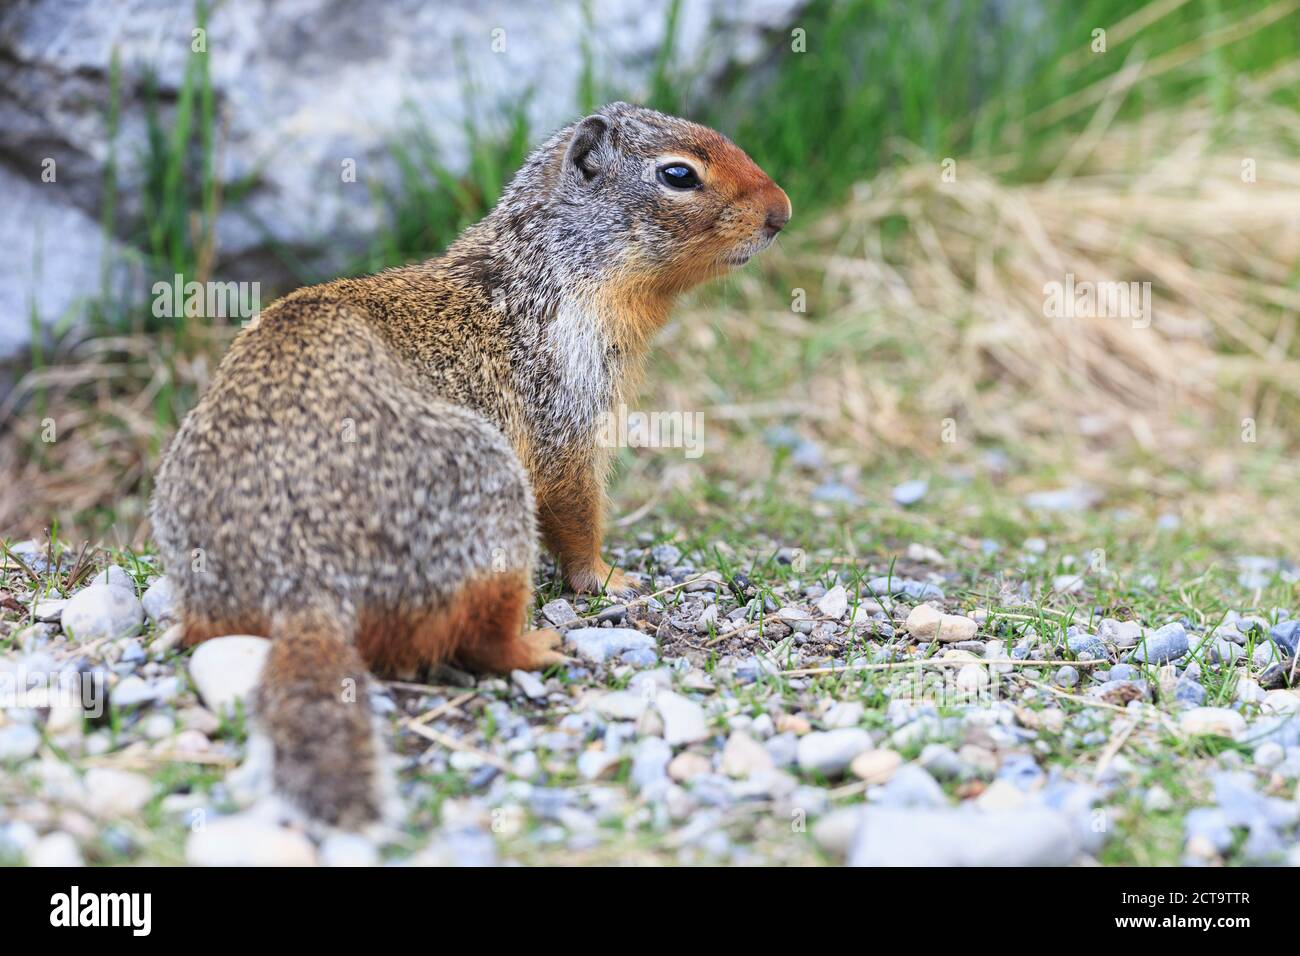 Canada, Alberta, Rocky Mountains, Jasper National Park, Banff Nationalpark, Columbian ground squirrel (Urocitellus columbianus) Stock Photo